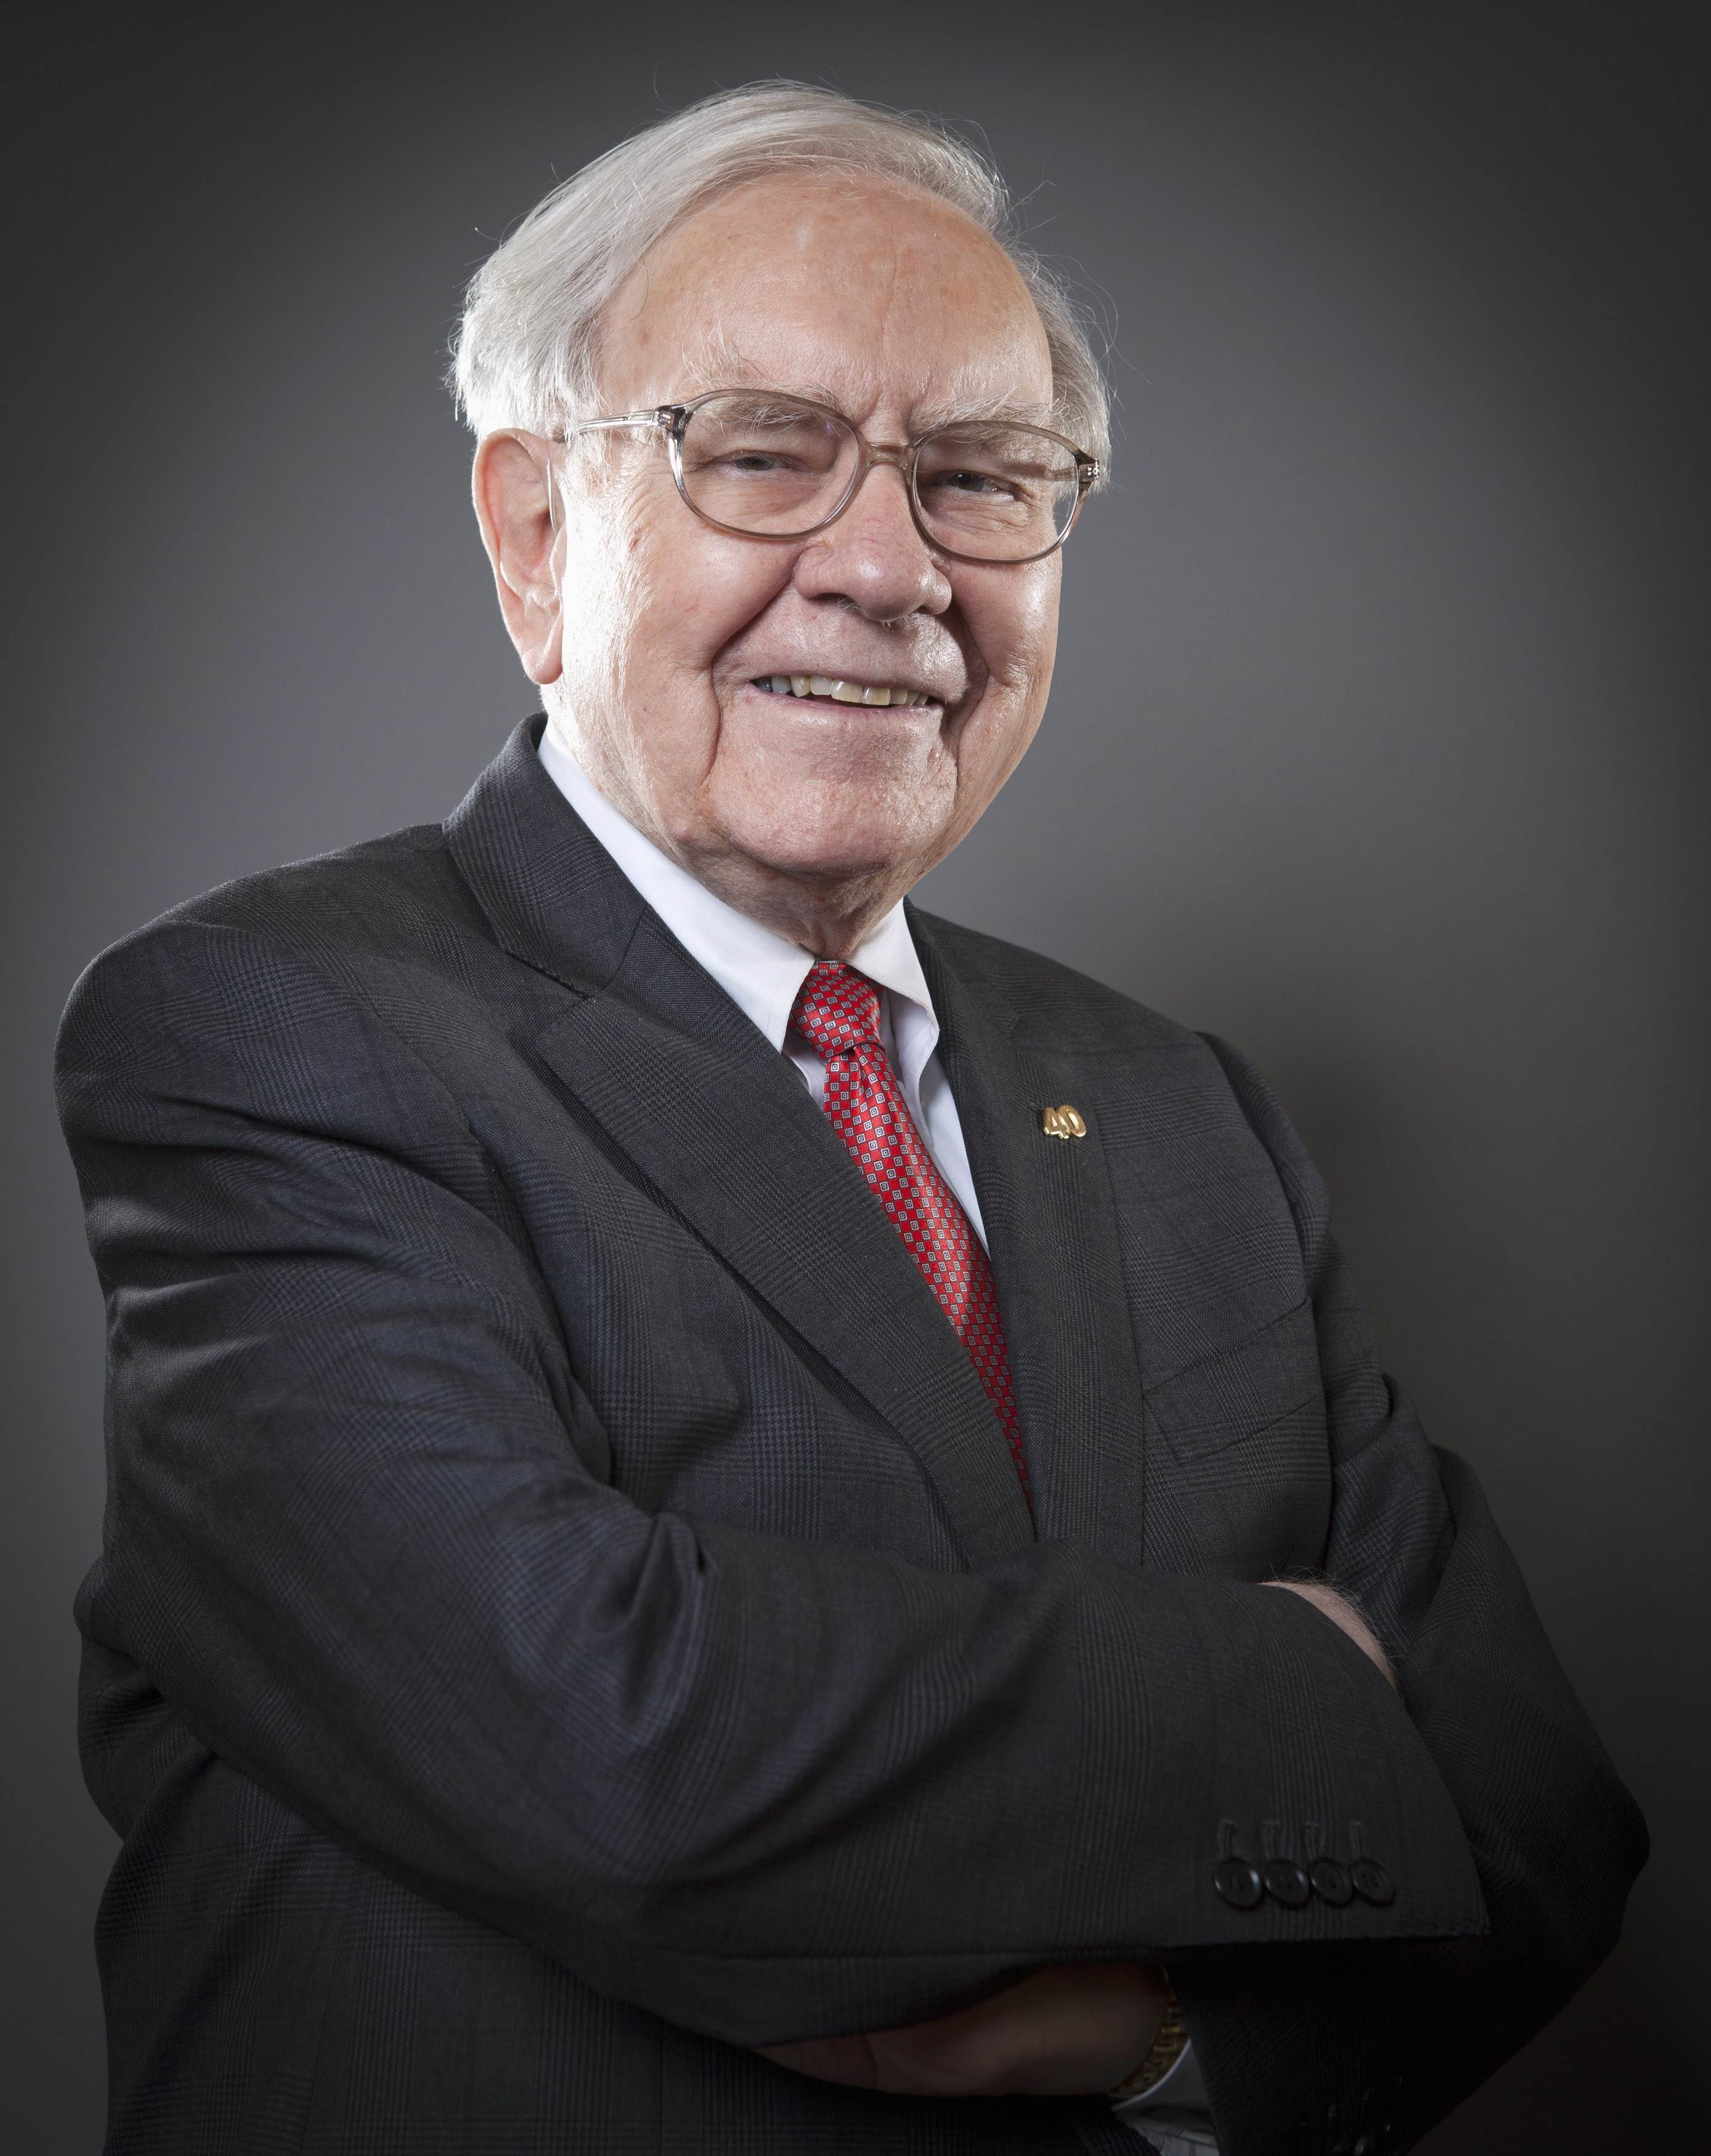 6 Investing Lessons From The Richest Man In The World Warren Buffett